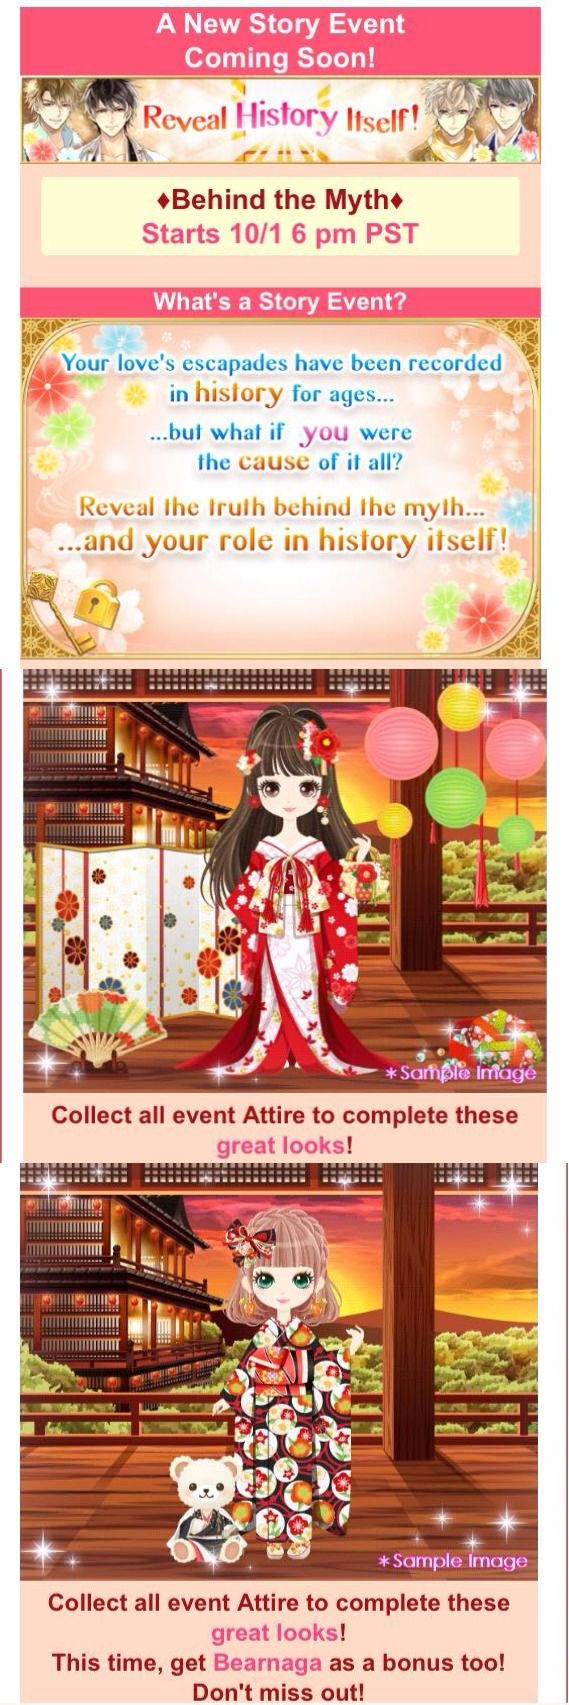 Behind the Myth story event #3